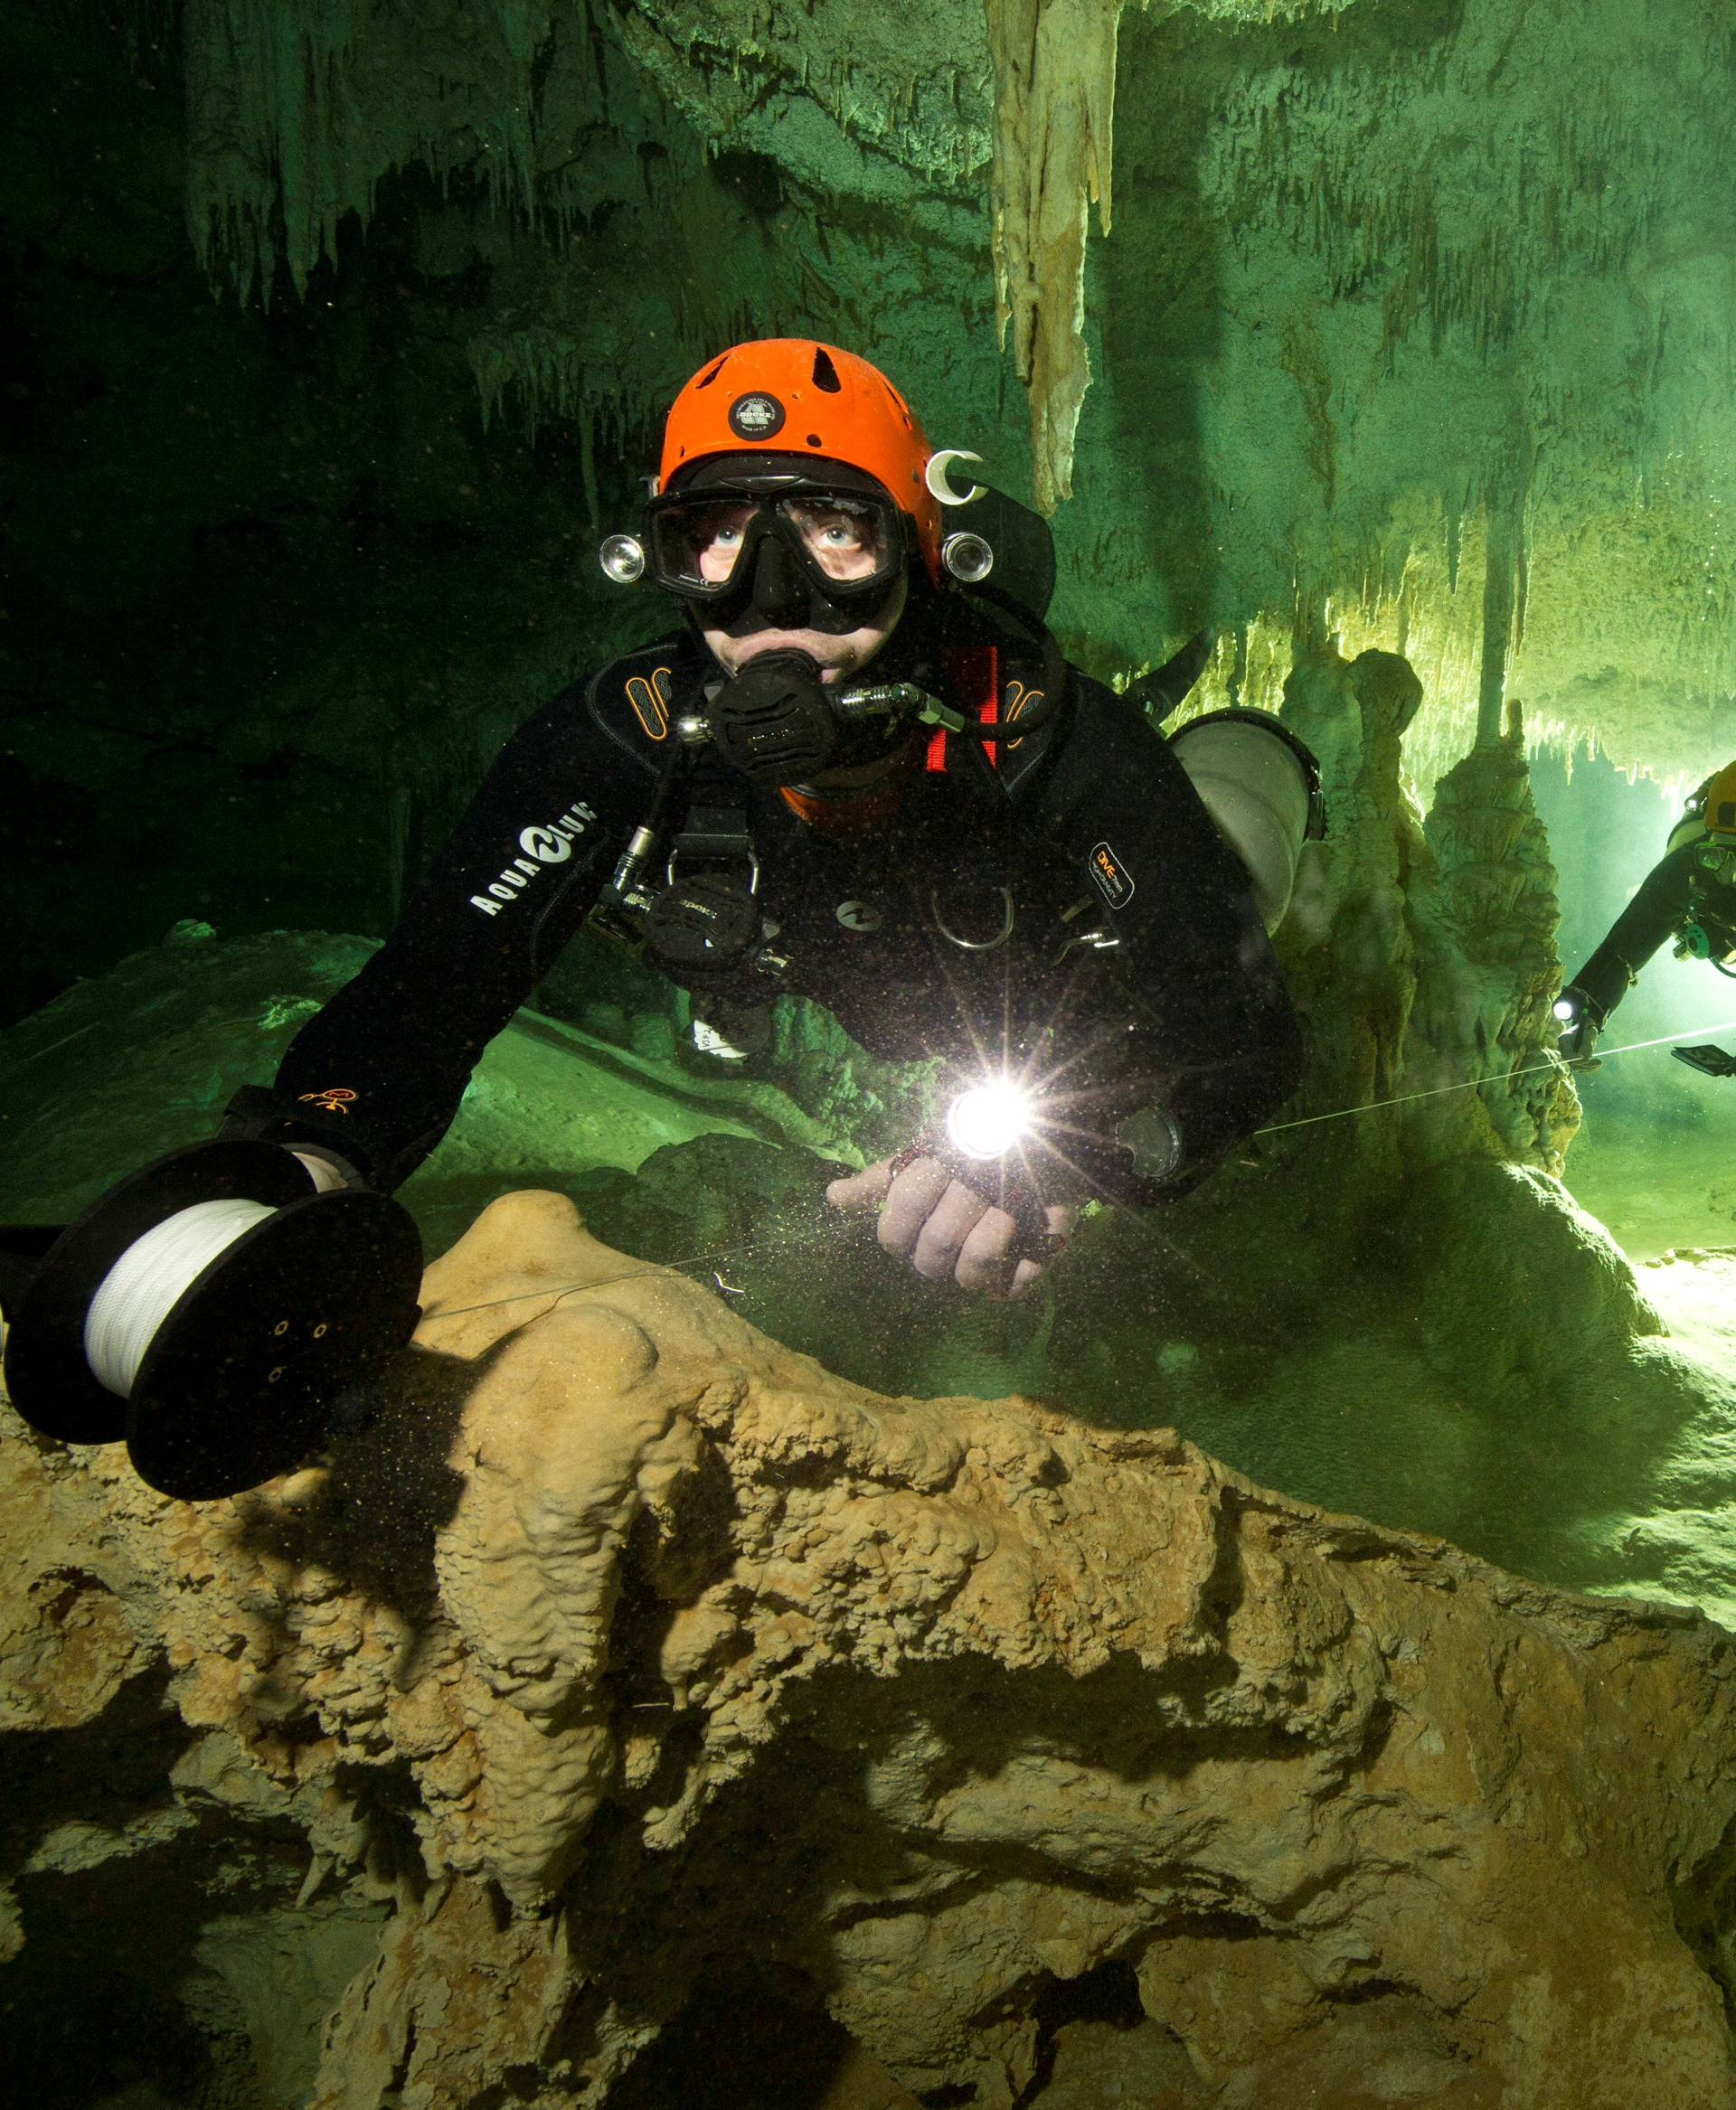 Scuba diver measures the length of Sac Aktun underwater cave system as part of the Gran Acuifero Maya Project near Tulum